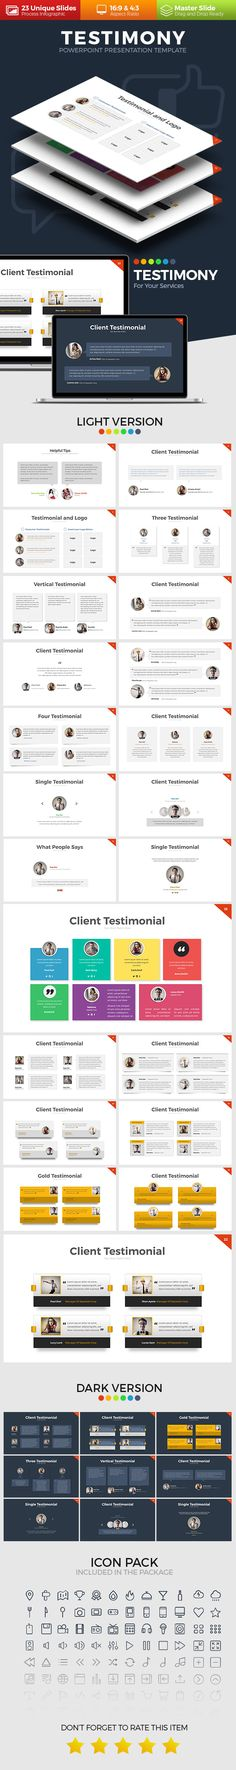 Testimony PowerPoint Template #powerpoint #presentation Download https://graphicriver.net/item/testimony-powerpoint-template/19185893?s_rank=3?ref=BrandEarth